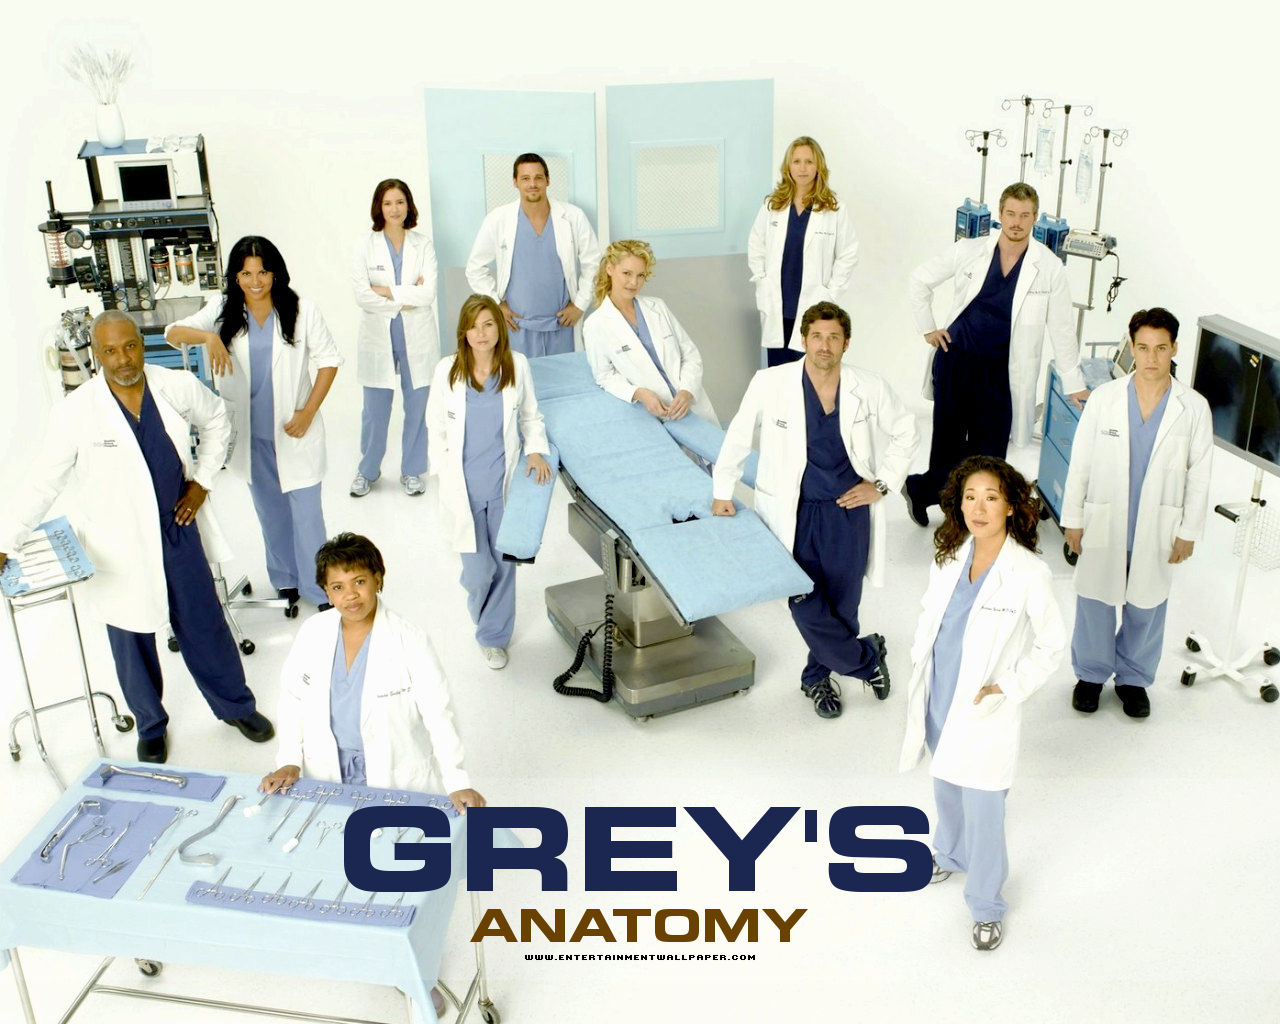 Greys Anatomy Hope For The Hopeless Season 8 Episode 12 Watch